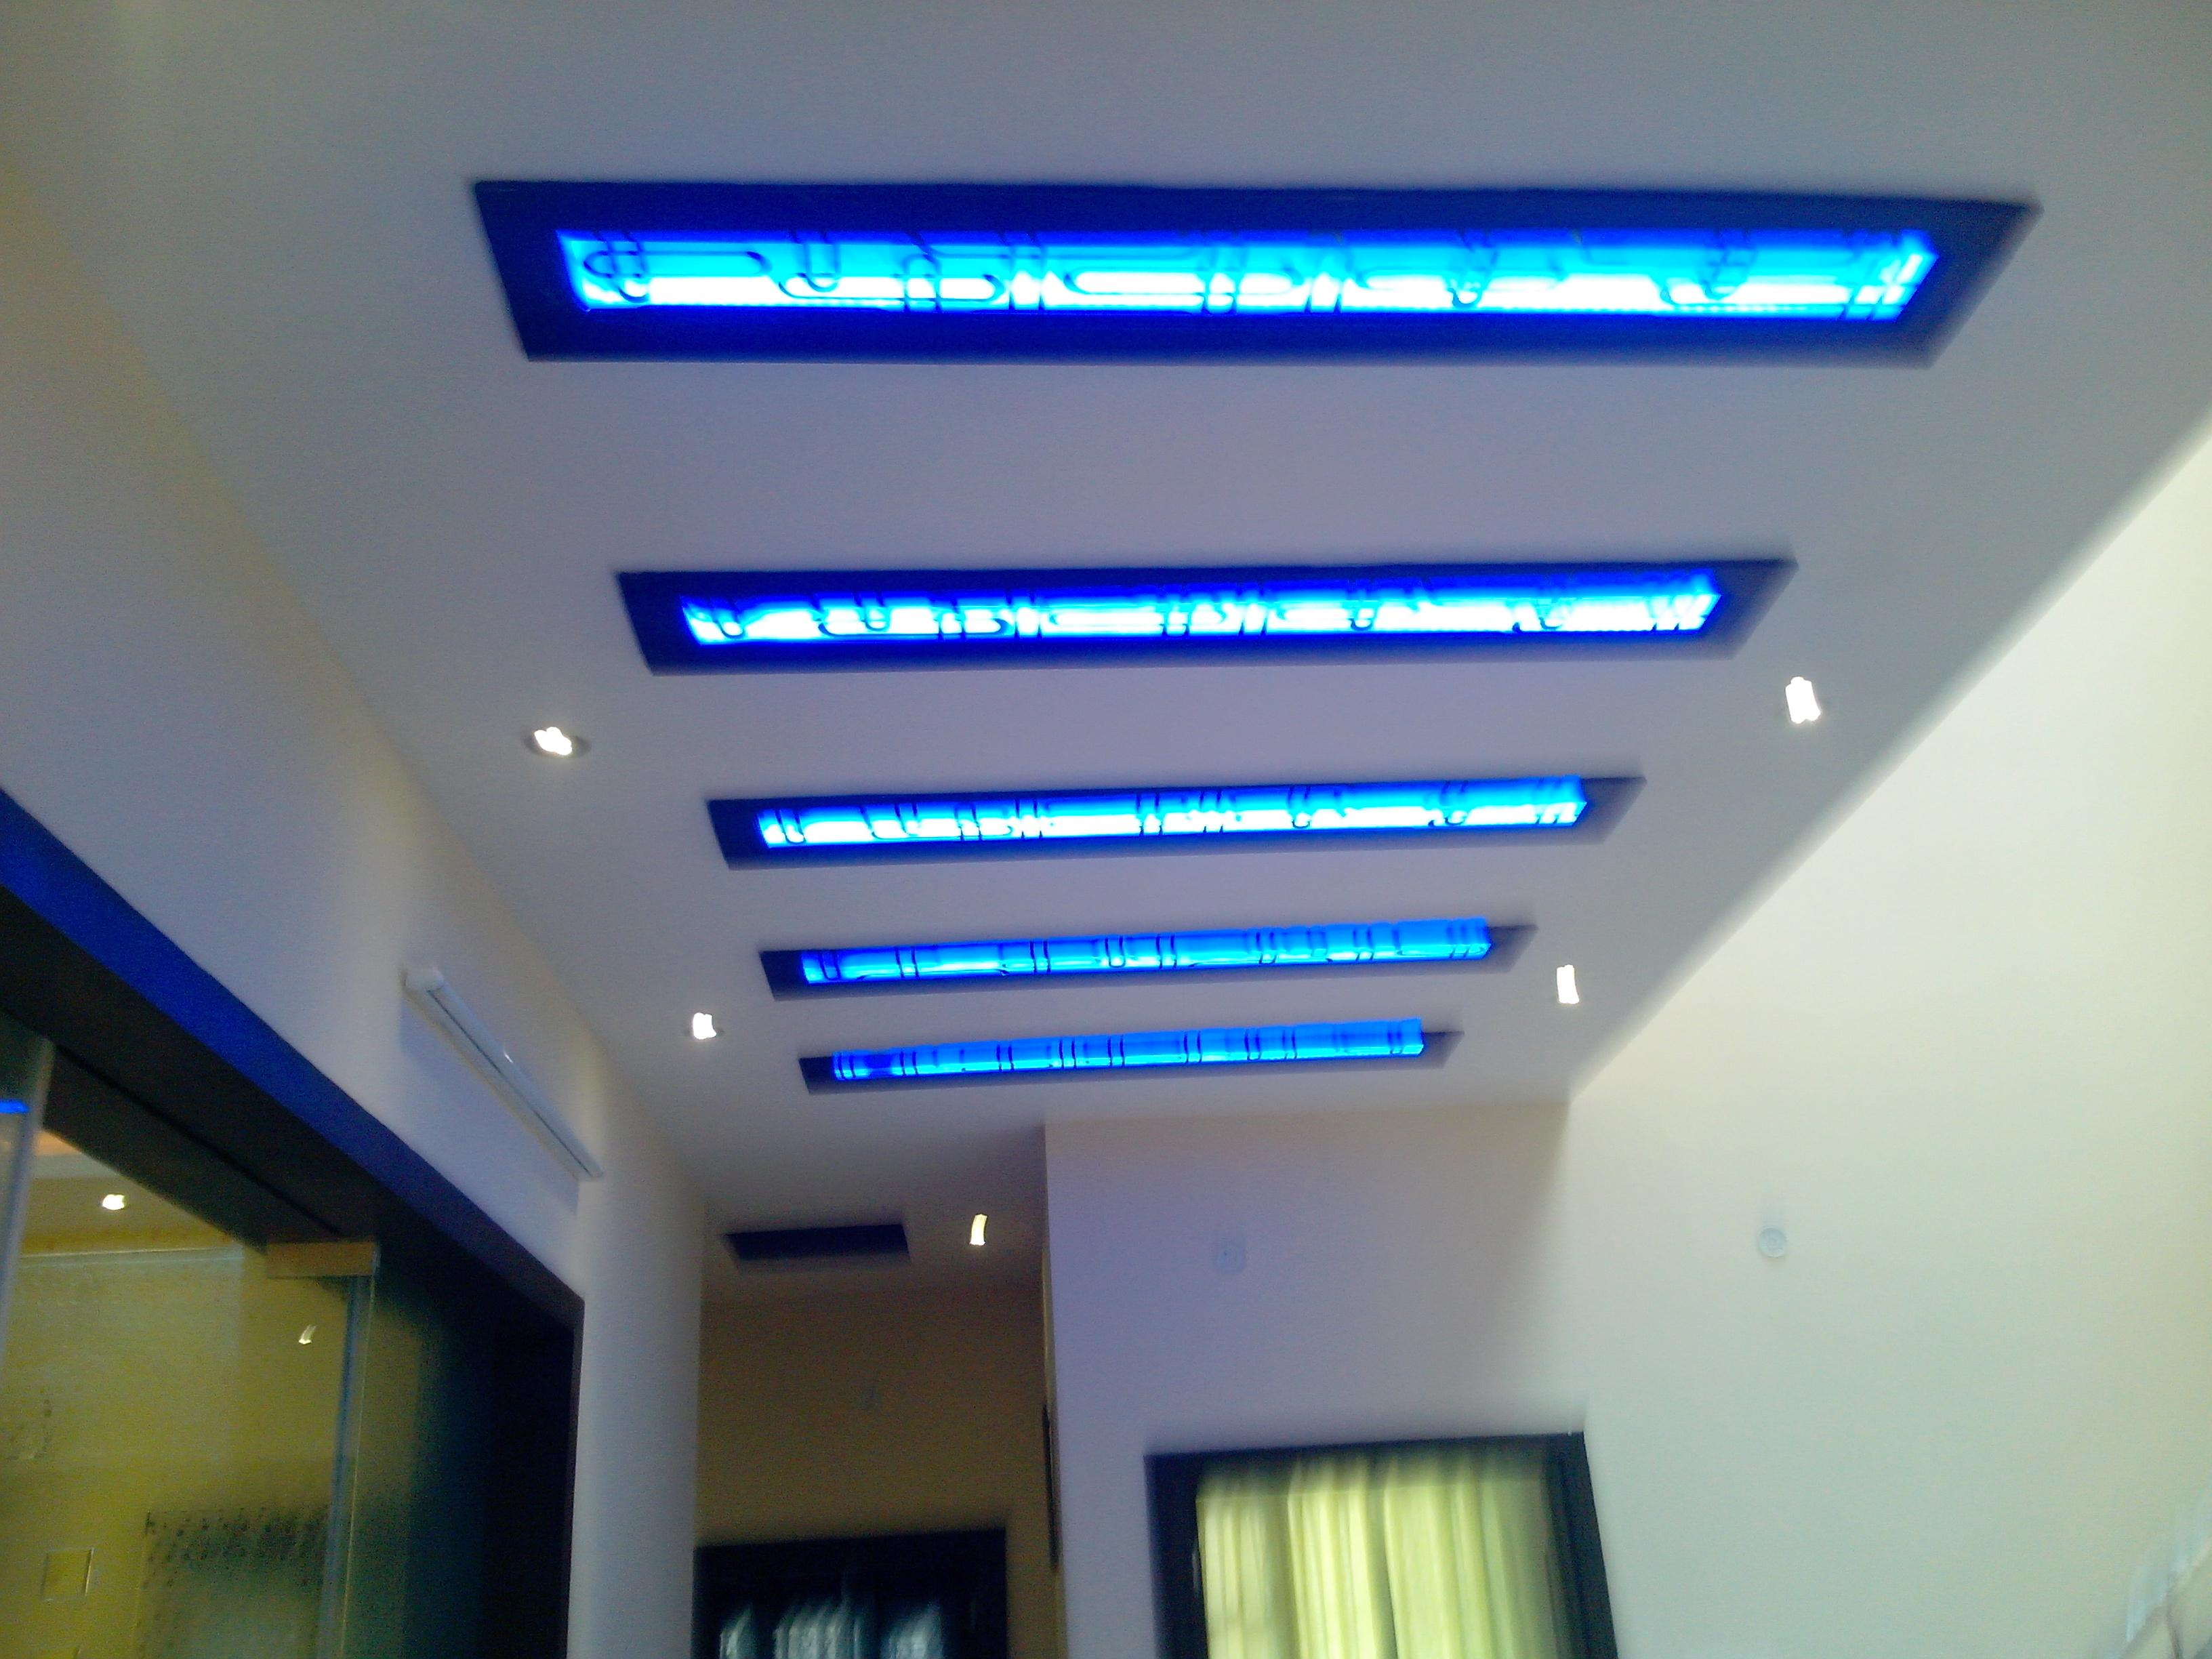 Ceiling design for a Lobby area with blue cove lights  : 77201353058 from www.gharexpert.com size 3264 x 2448 jpeg 561kB